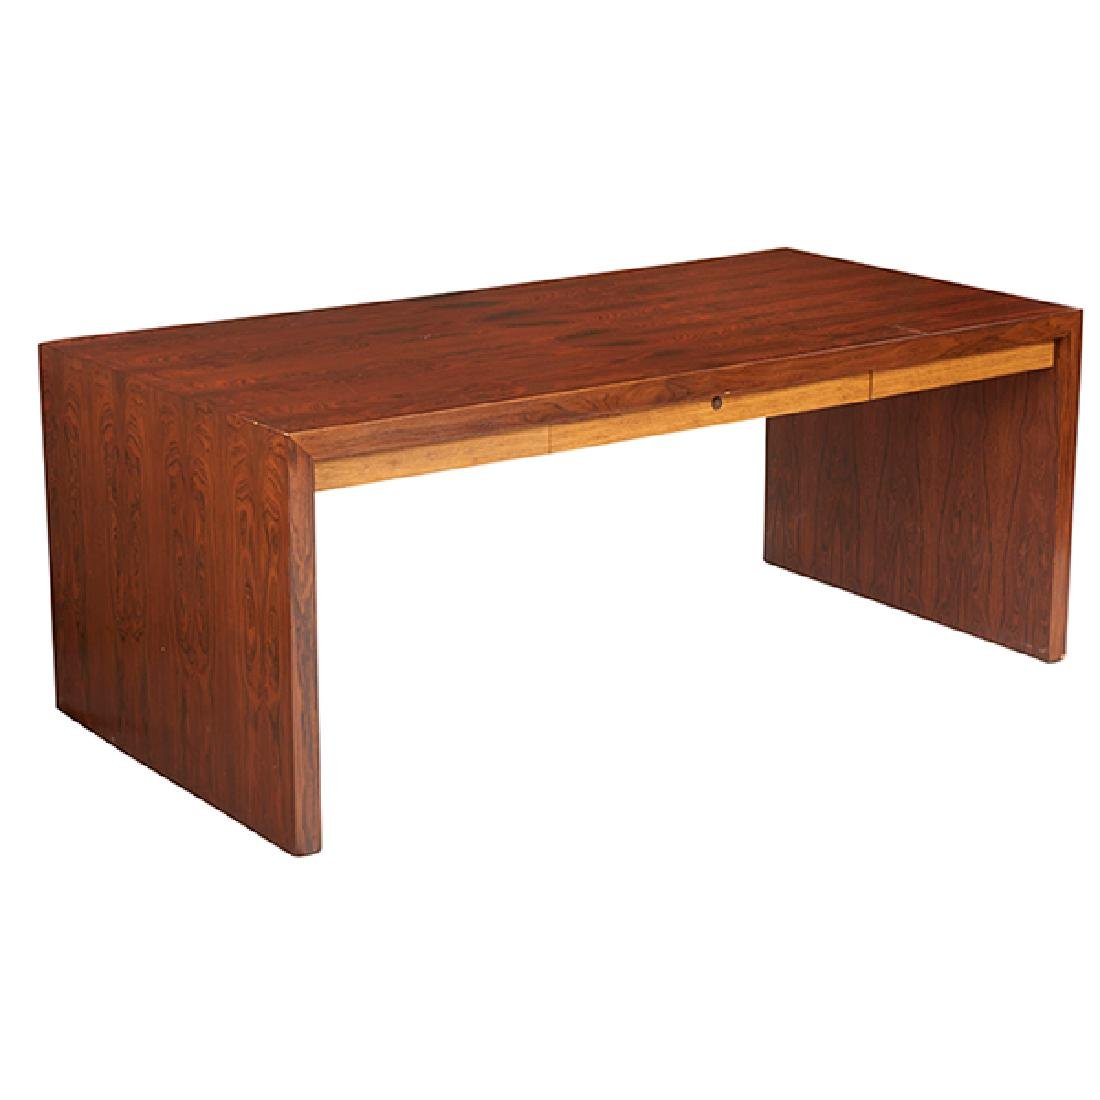 Roger Sprunger for Dunbar Executive Desk